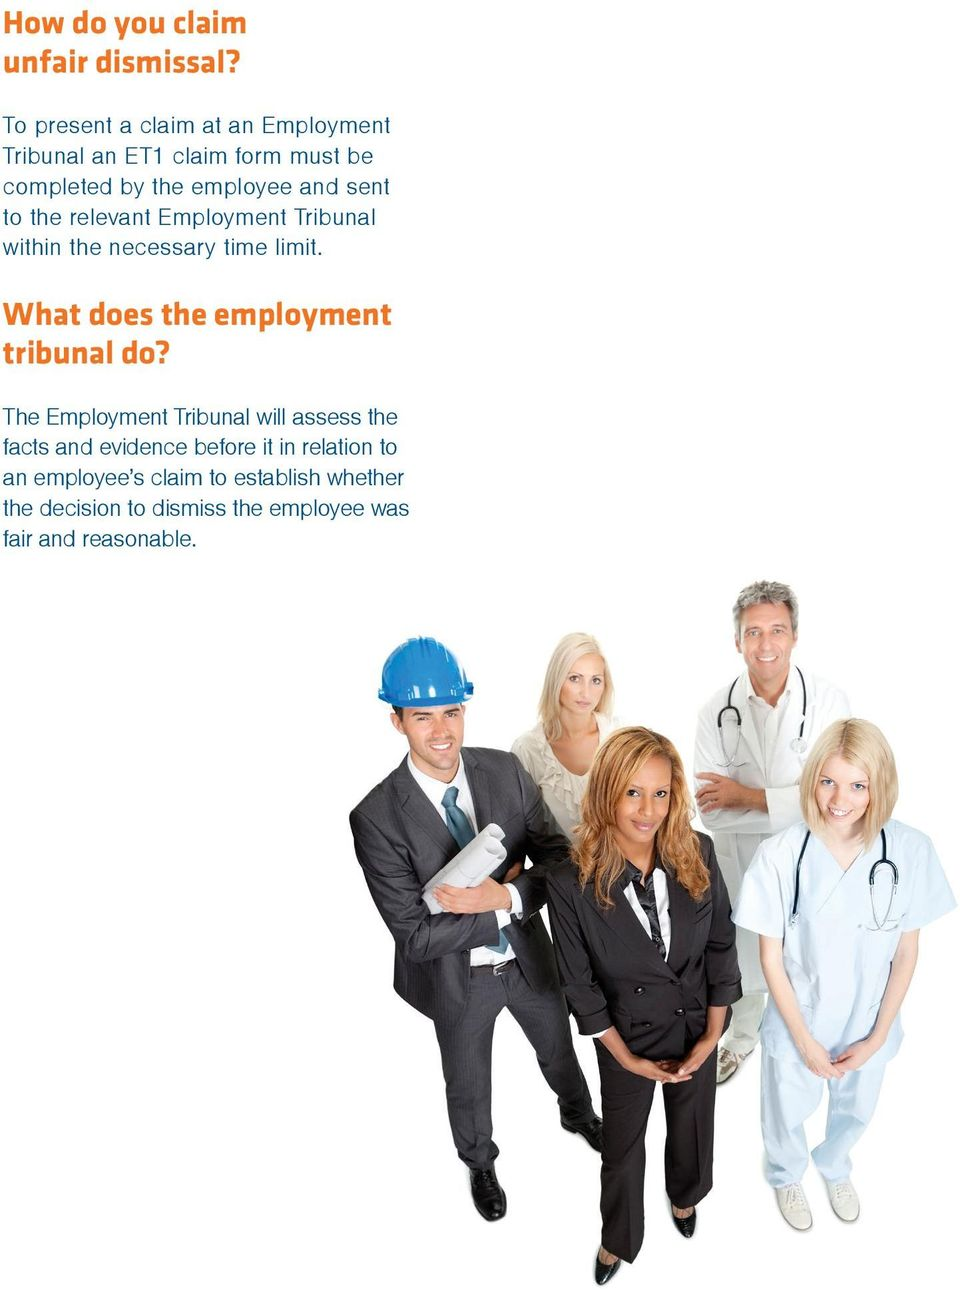 the relevant Employment Tribunal within the necessary time limit. What does the employment tribunal do?